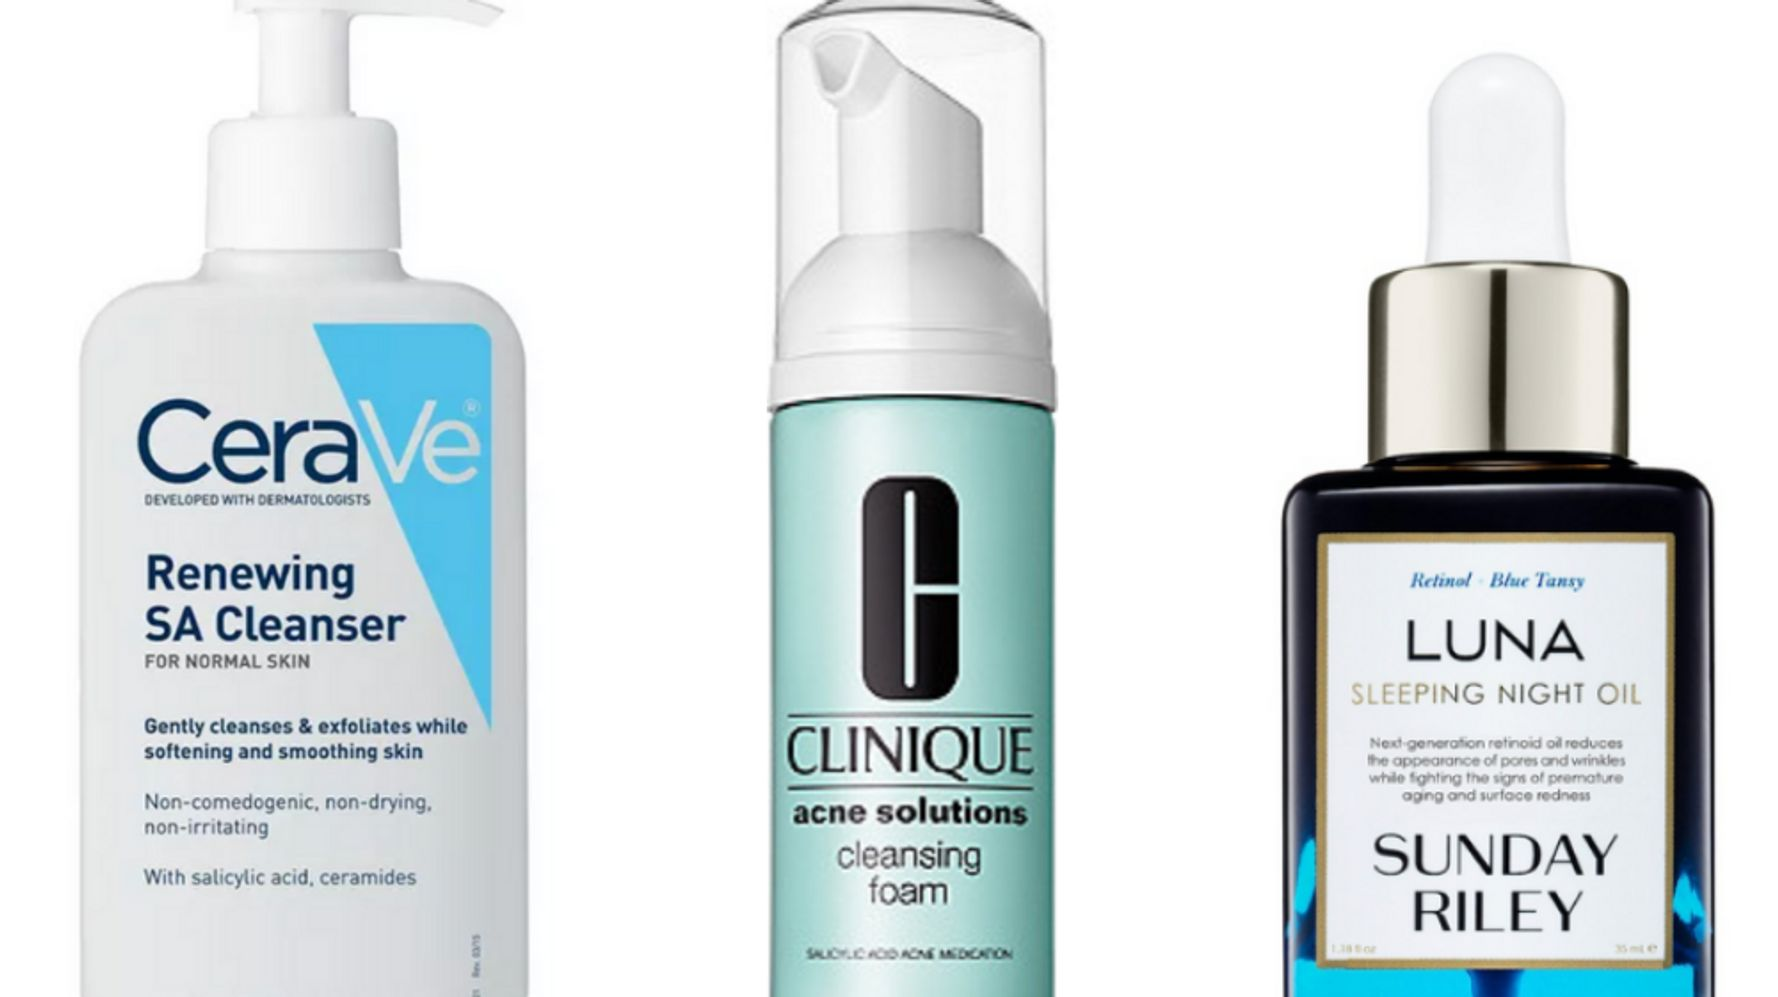 www.huffpost.com: The Best Skin Care Products For Adult Acne, According To Dermatologists